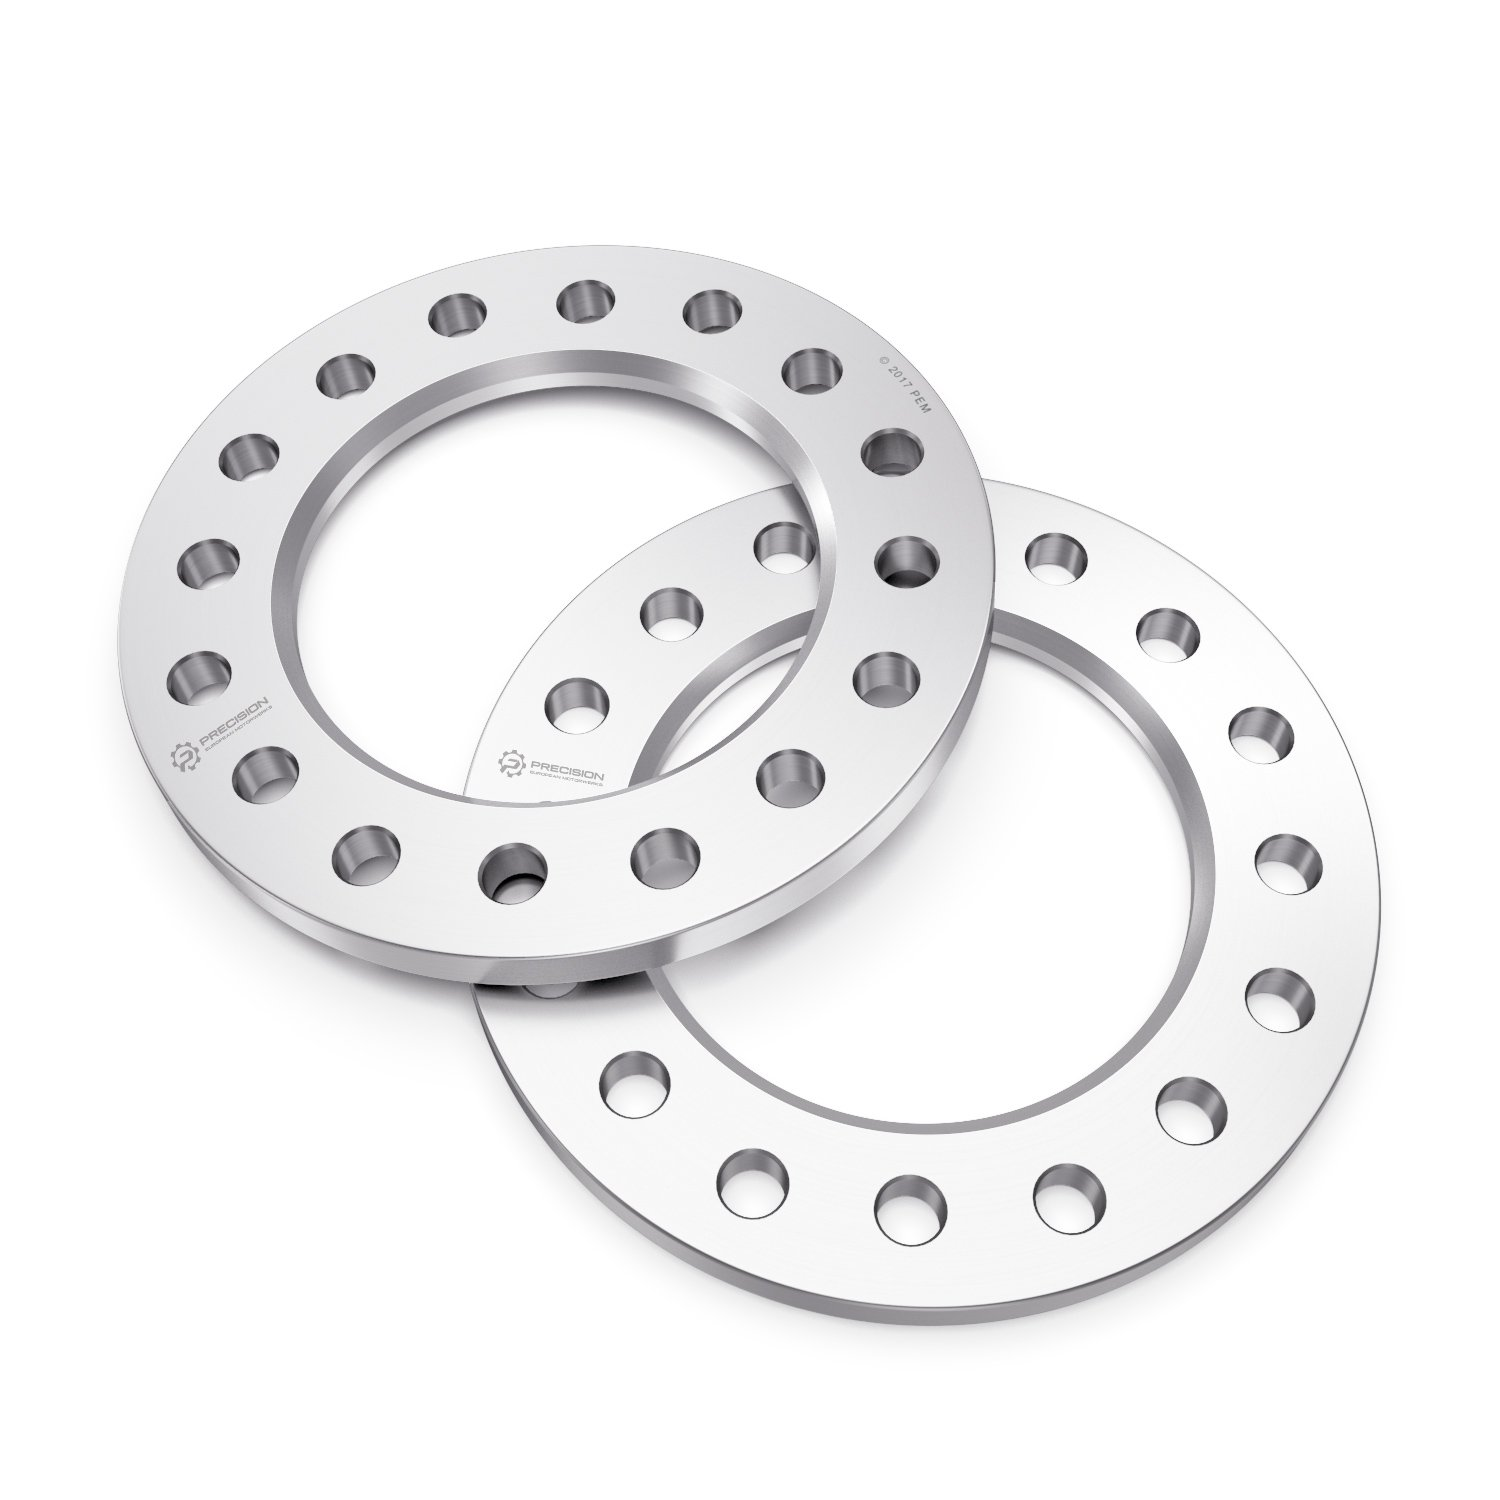 See Description for Year Model - 8x165.1 and 8x170 Silver Aluminum RockTrix 4pcs 1//2 inch 8x170 and 8x6.5 Flat Wheel Spacers Compatible with many 8-lug Chevy Ford GMC Hummer Dodge